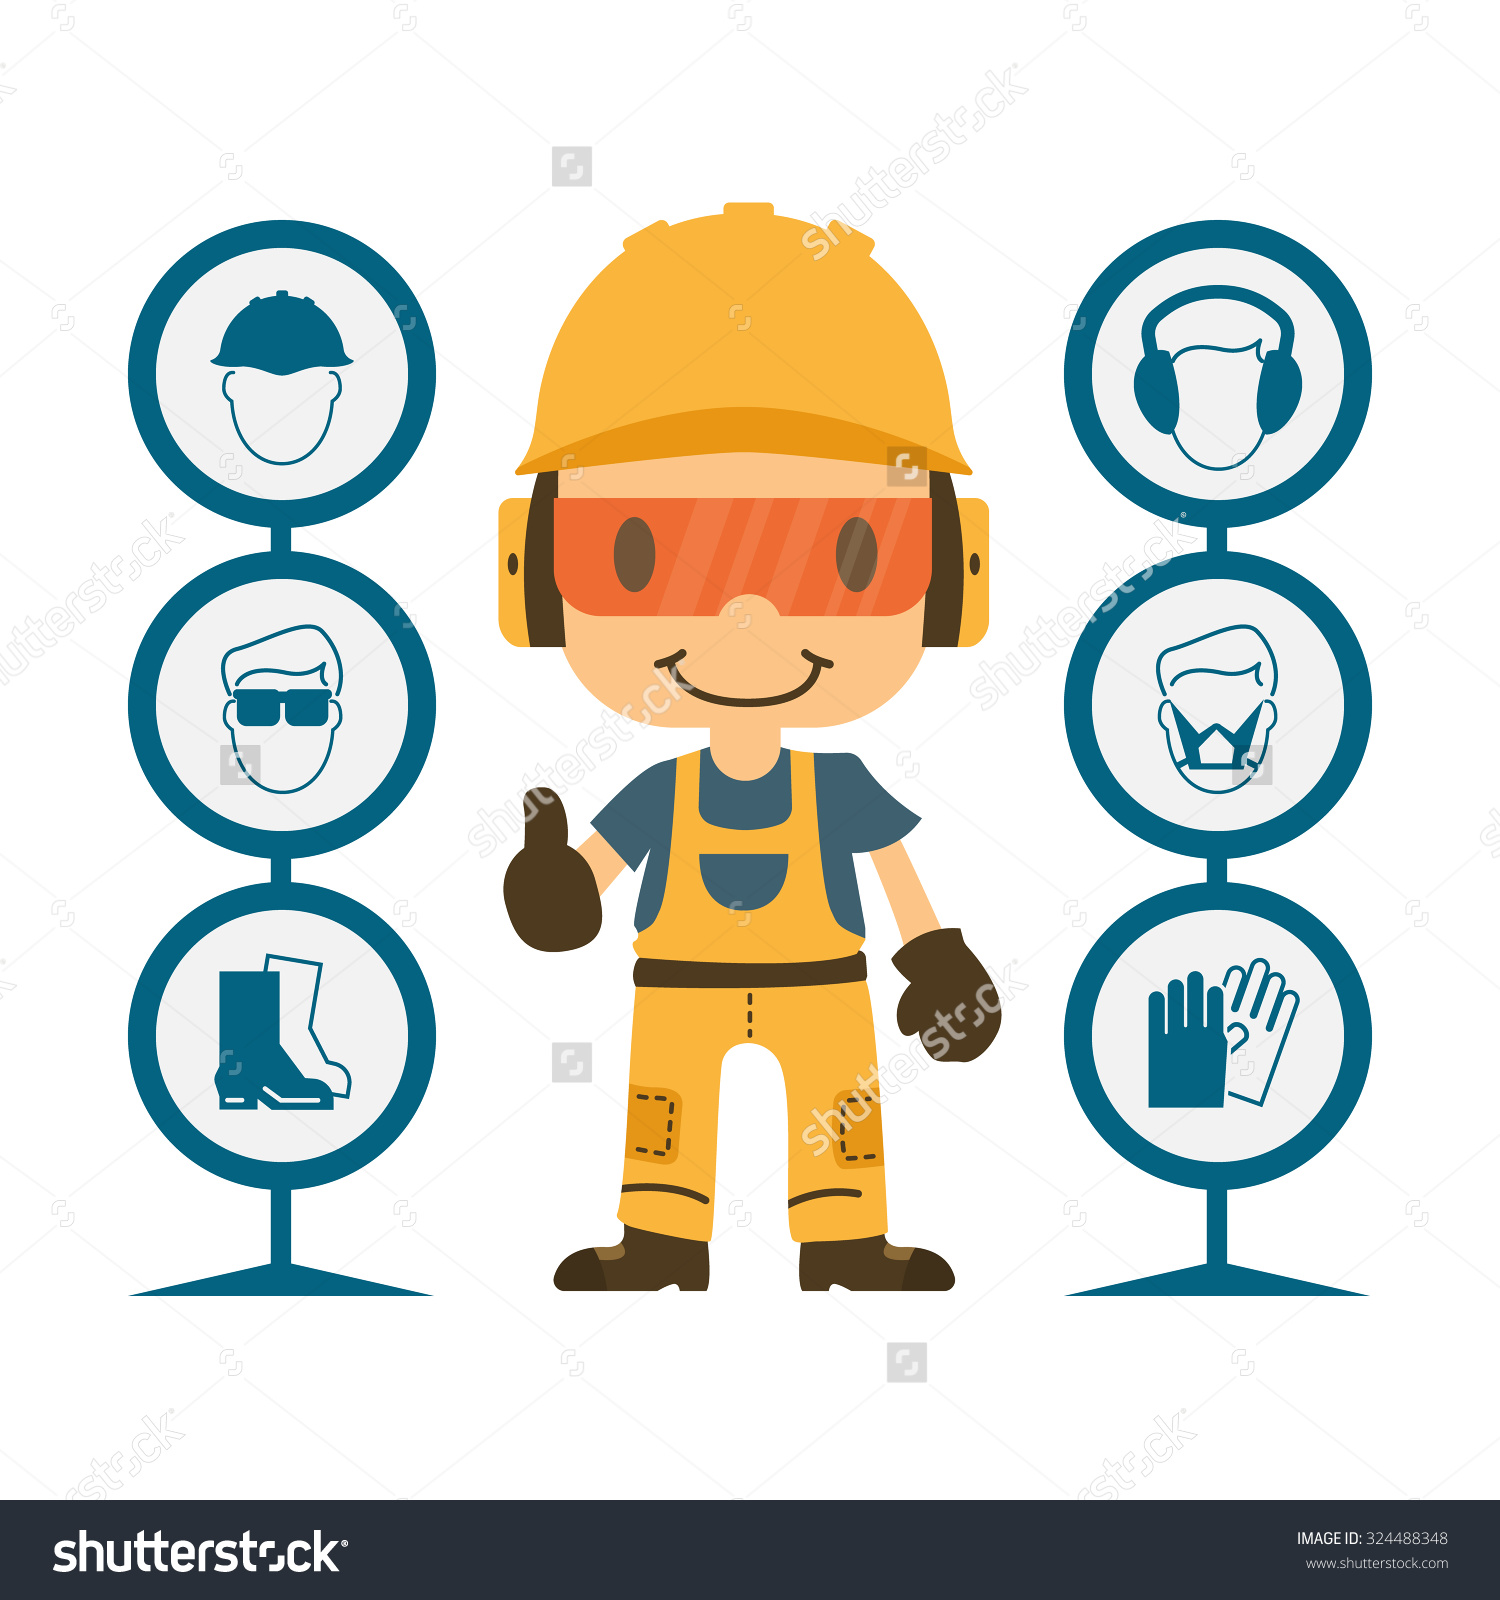 Work safety clipart jpg freeuse download Safety Ppe Clipart (75 ) - Free Clipart jpg freeuse download